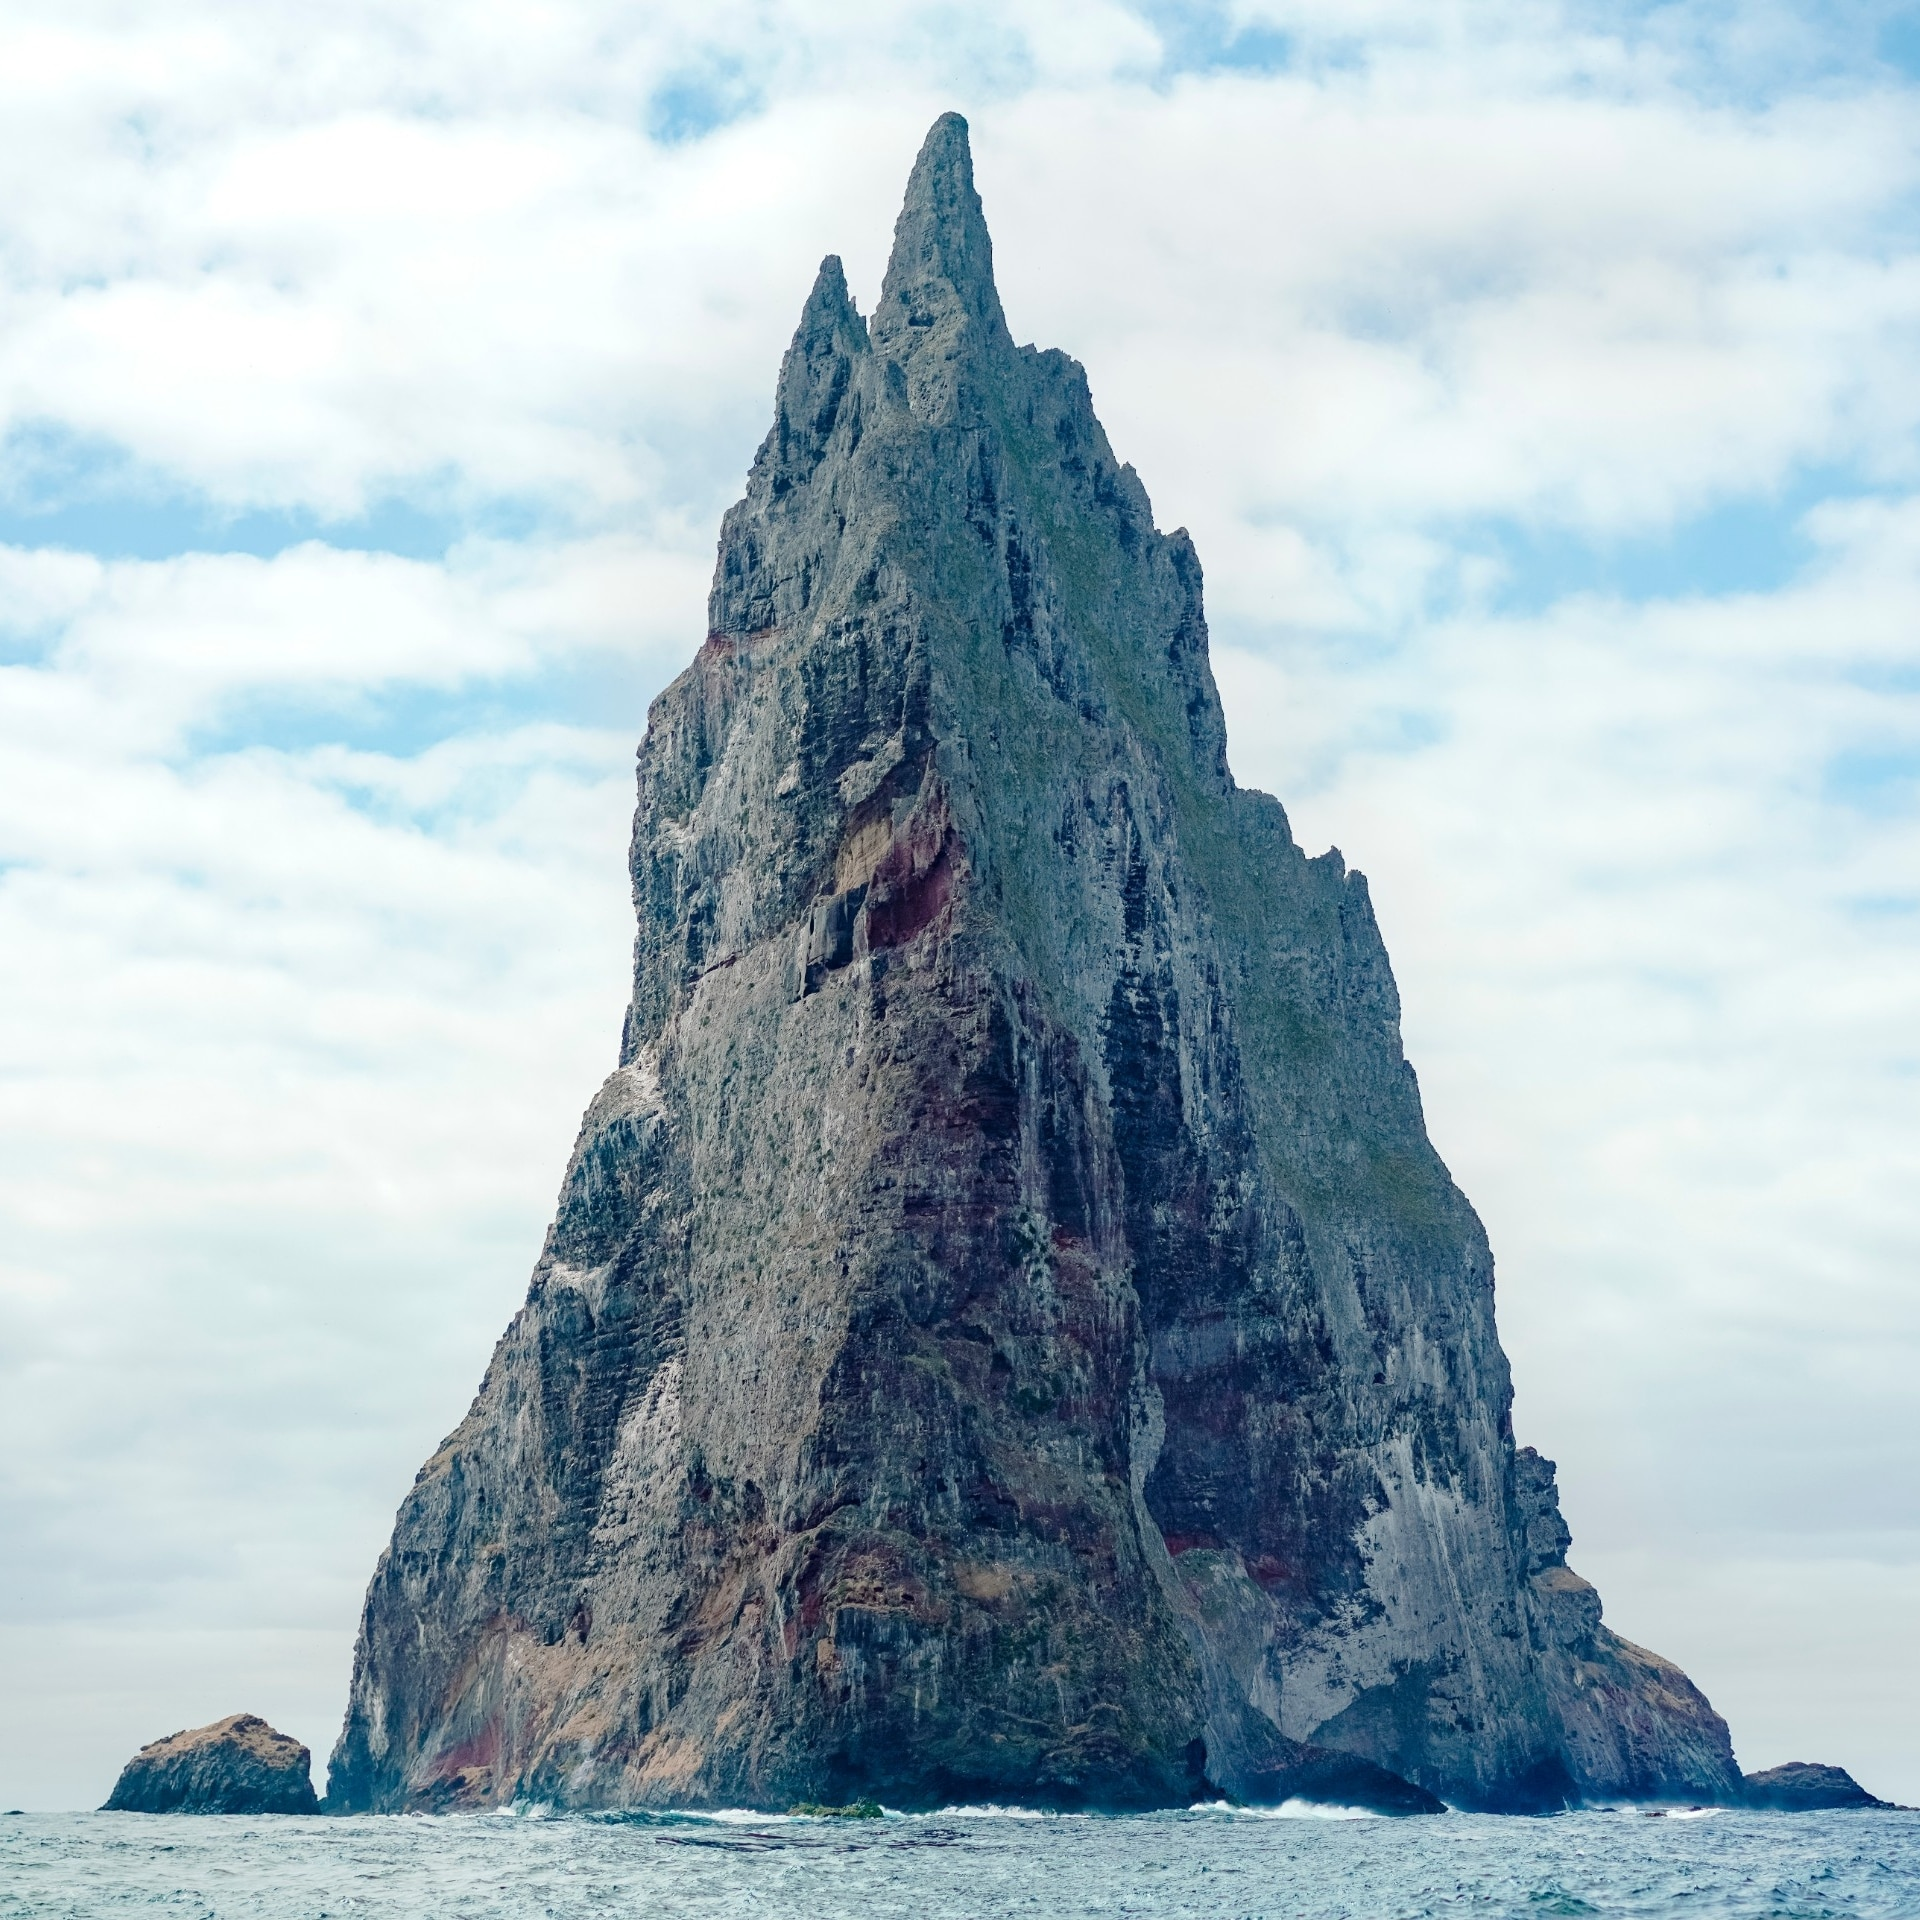 The Balls Pyramid volcanic stack near Lord Howe Island © Zach Sanders